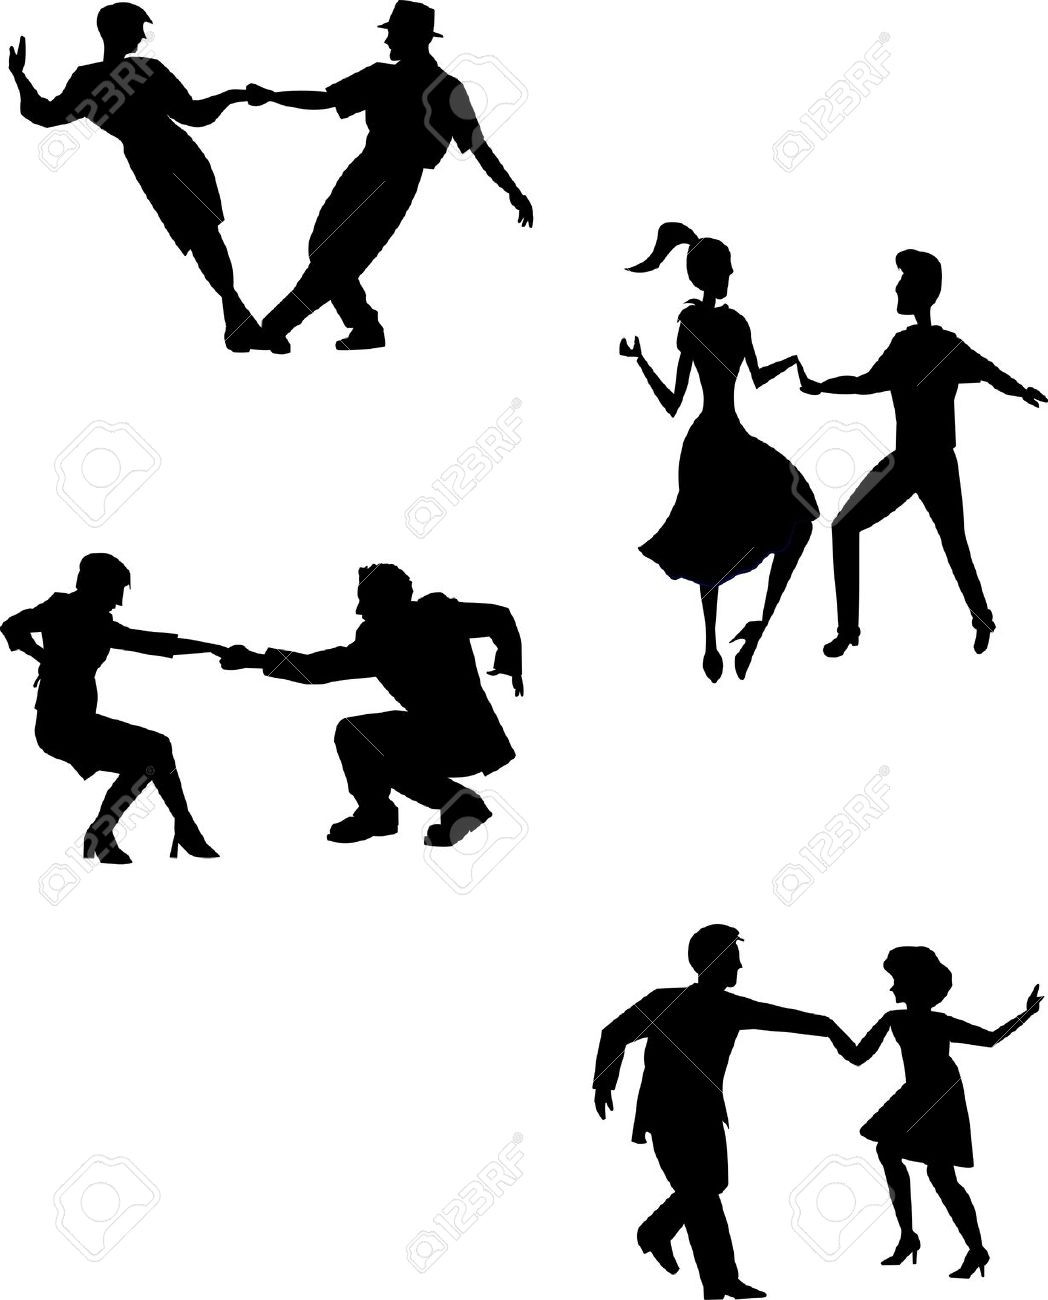 1048x1300 Swing Dance Silhouette Ballroom Dancing Assiettes Tearing